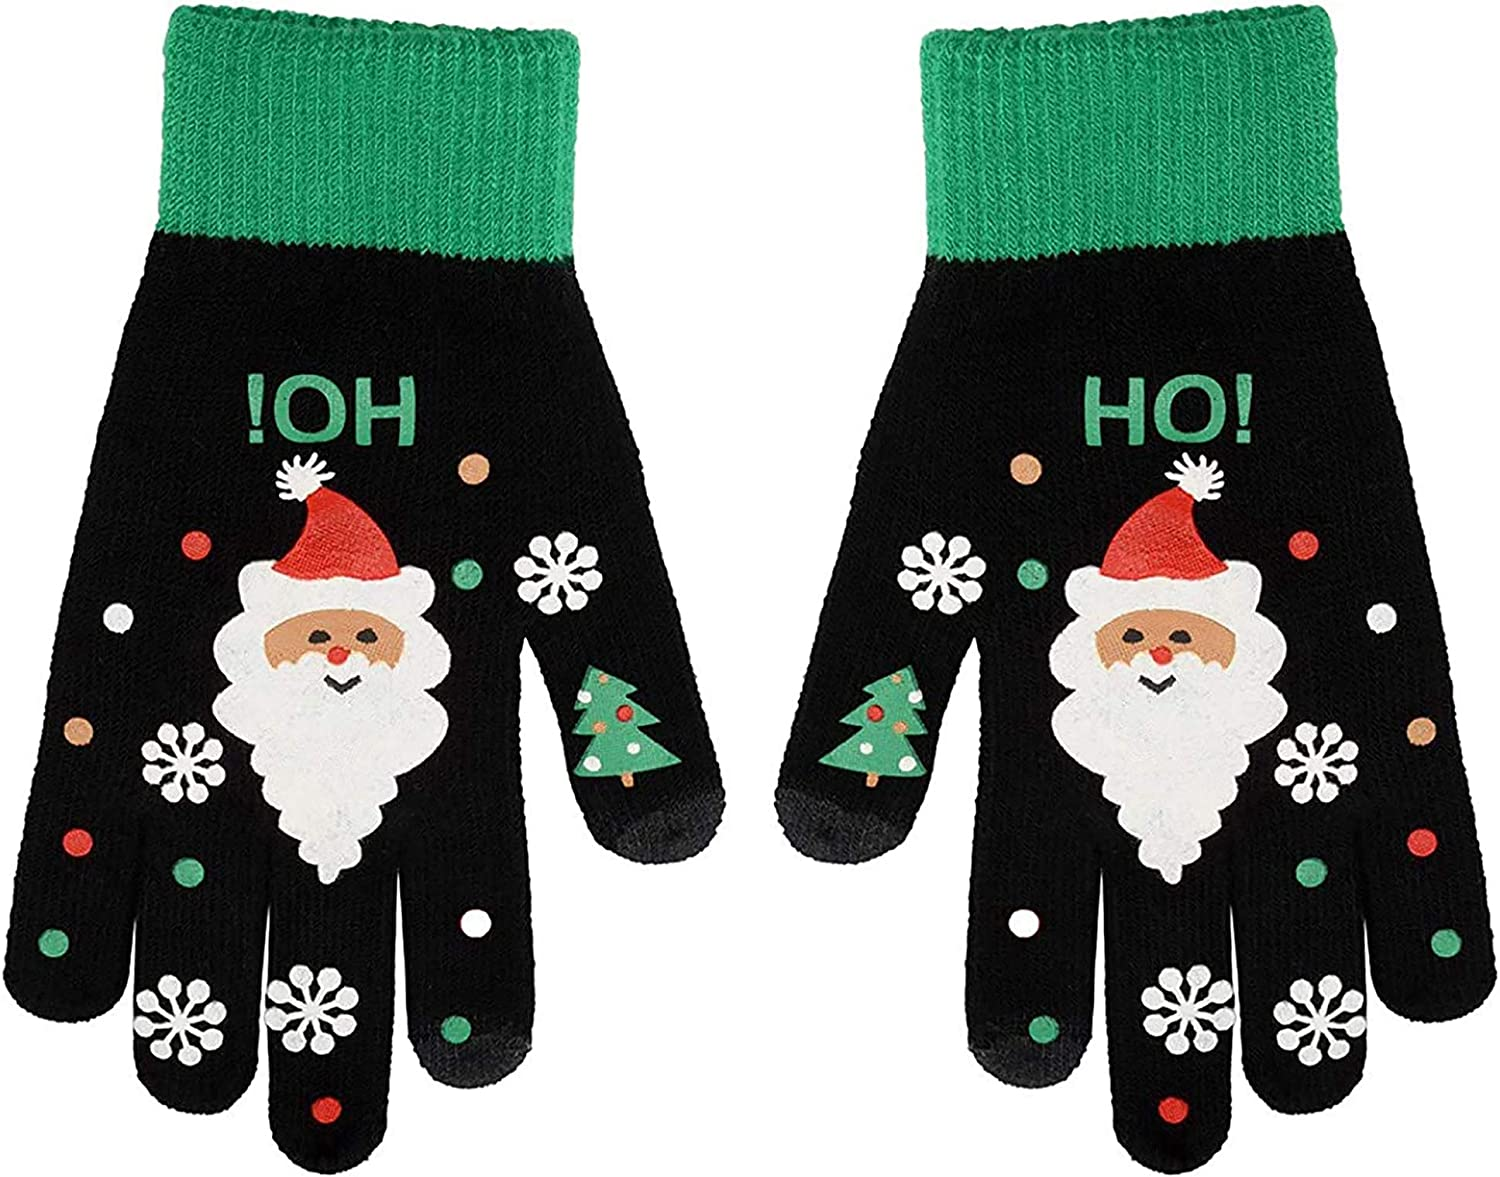 Christmas Knit Gloves Winter Touch Screen Warm Texting Gloves Deer Santa Knit Printing Xmas gifts for women